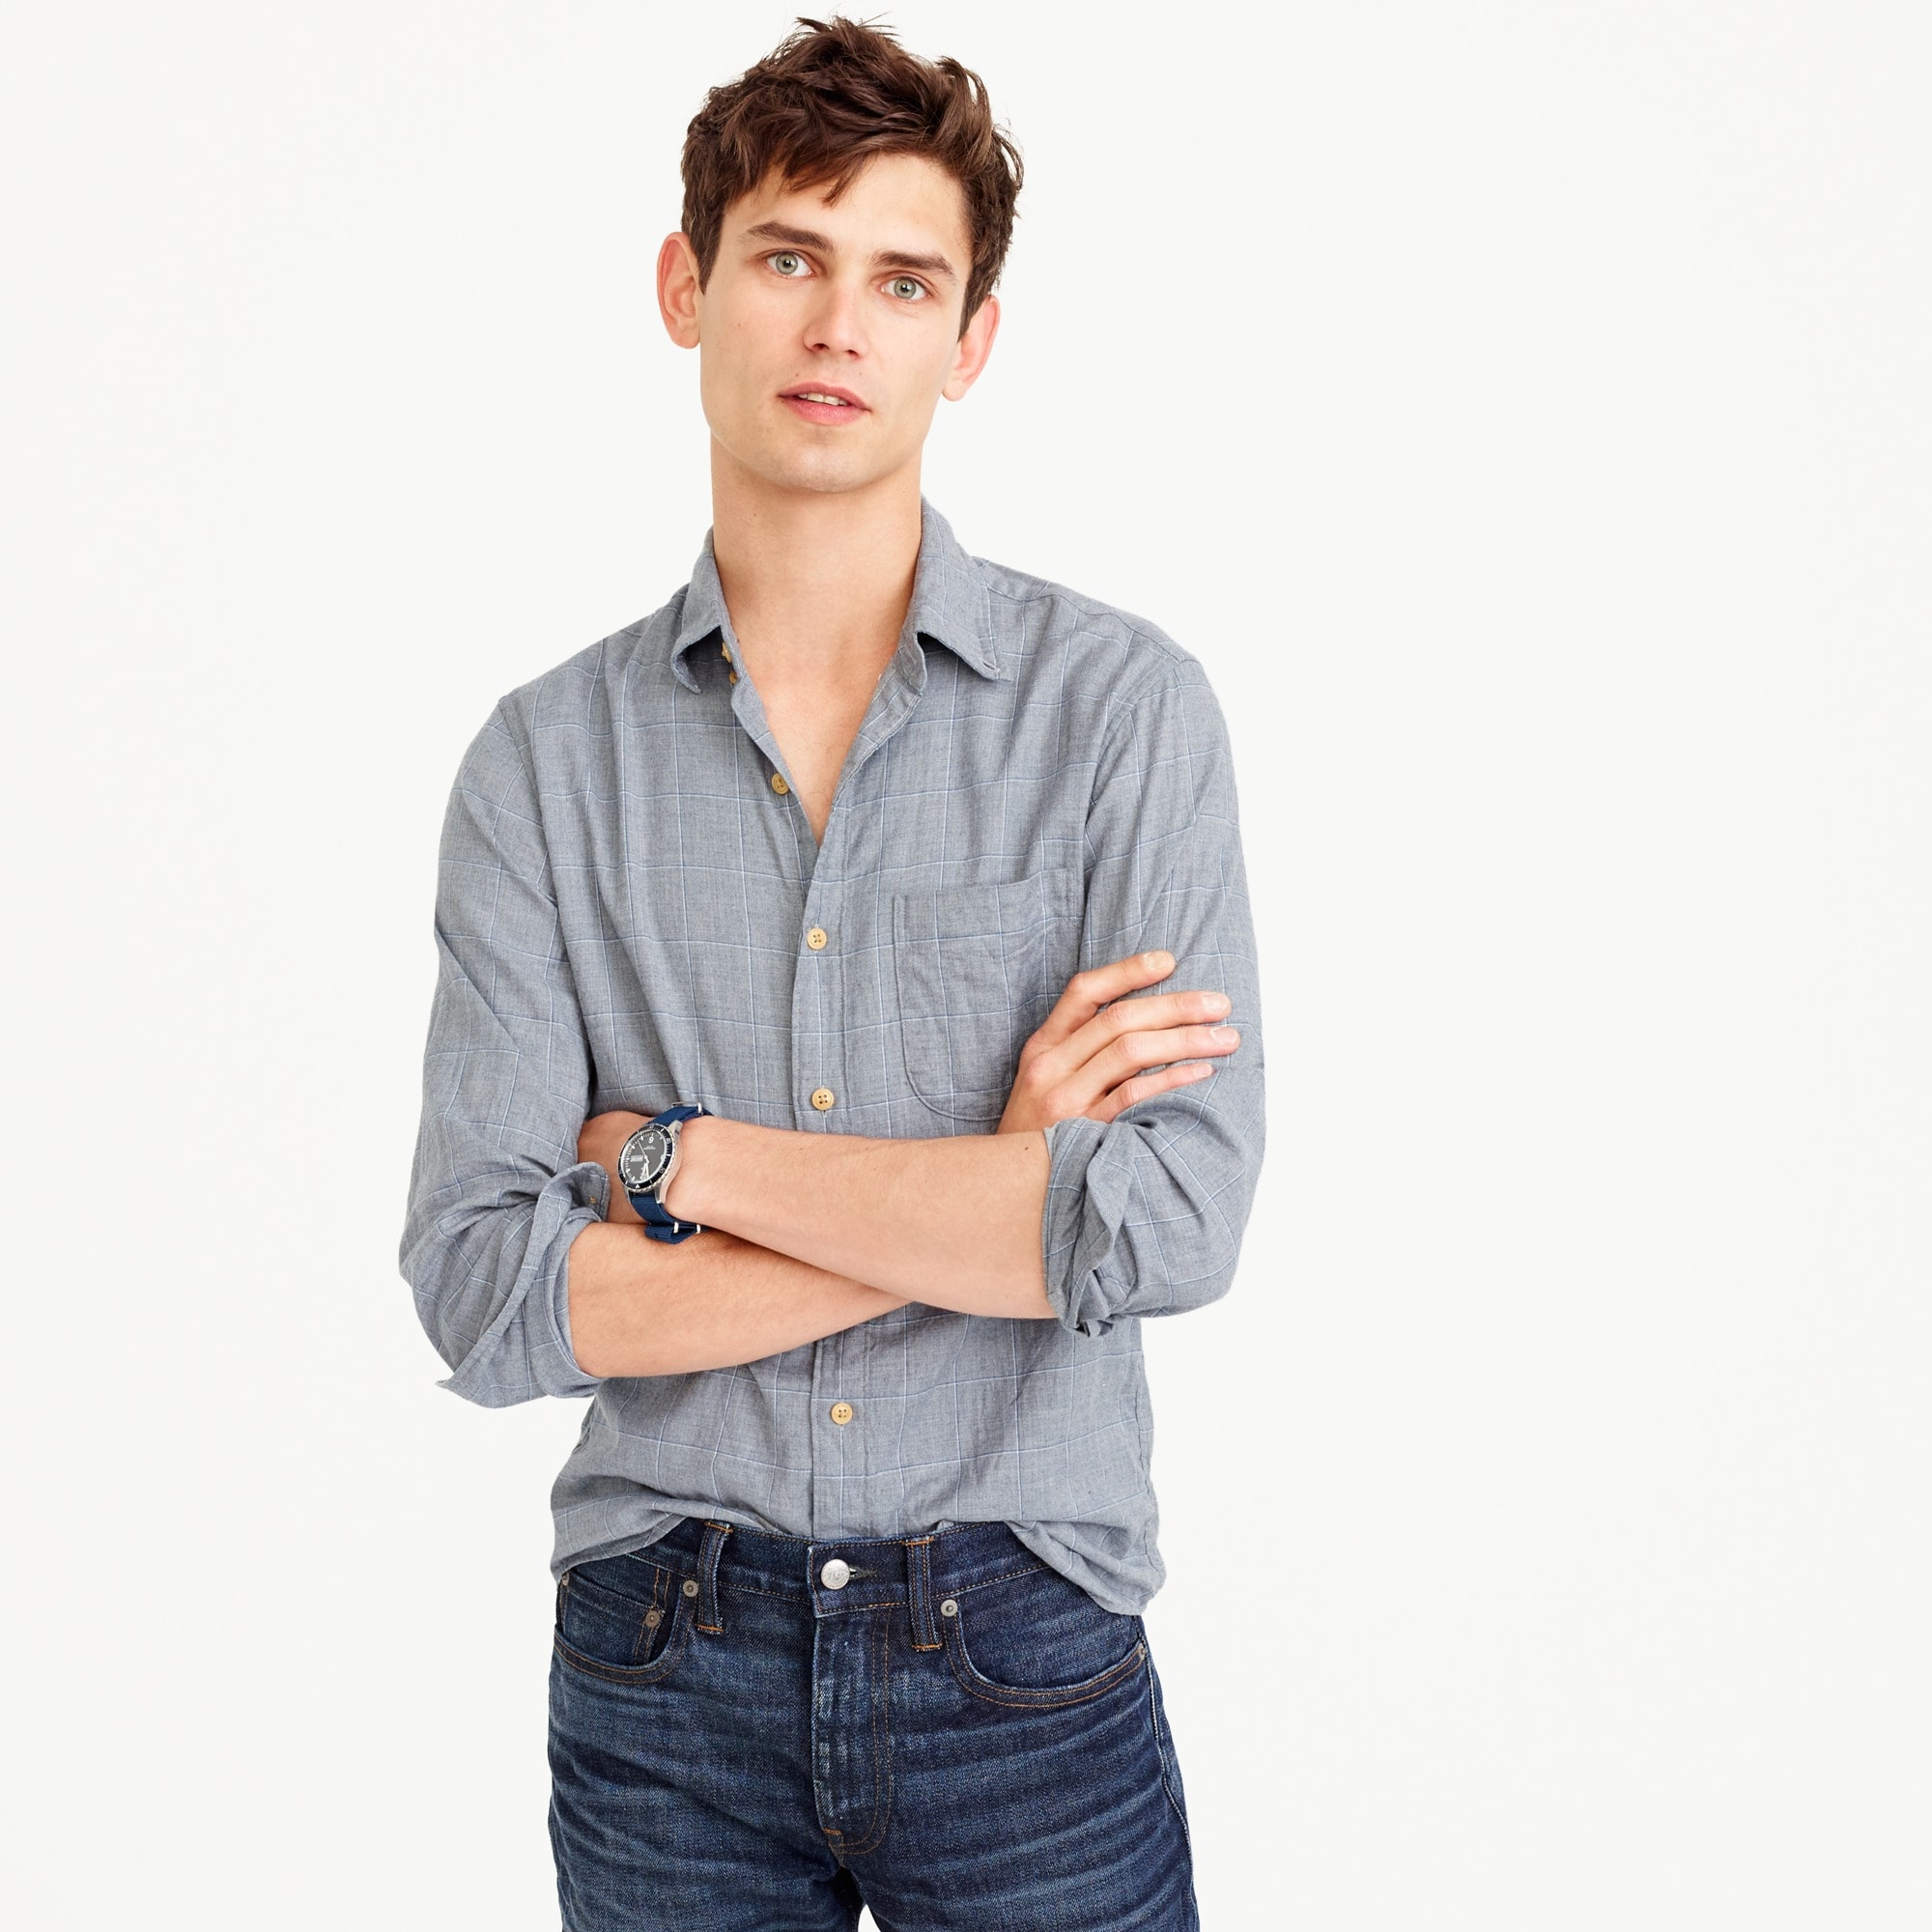 Image 1 for Slim brushed flannel shirt in tattersall